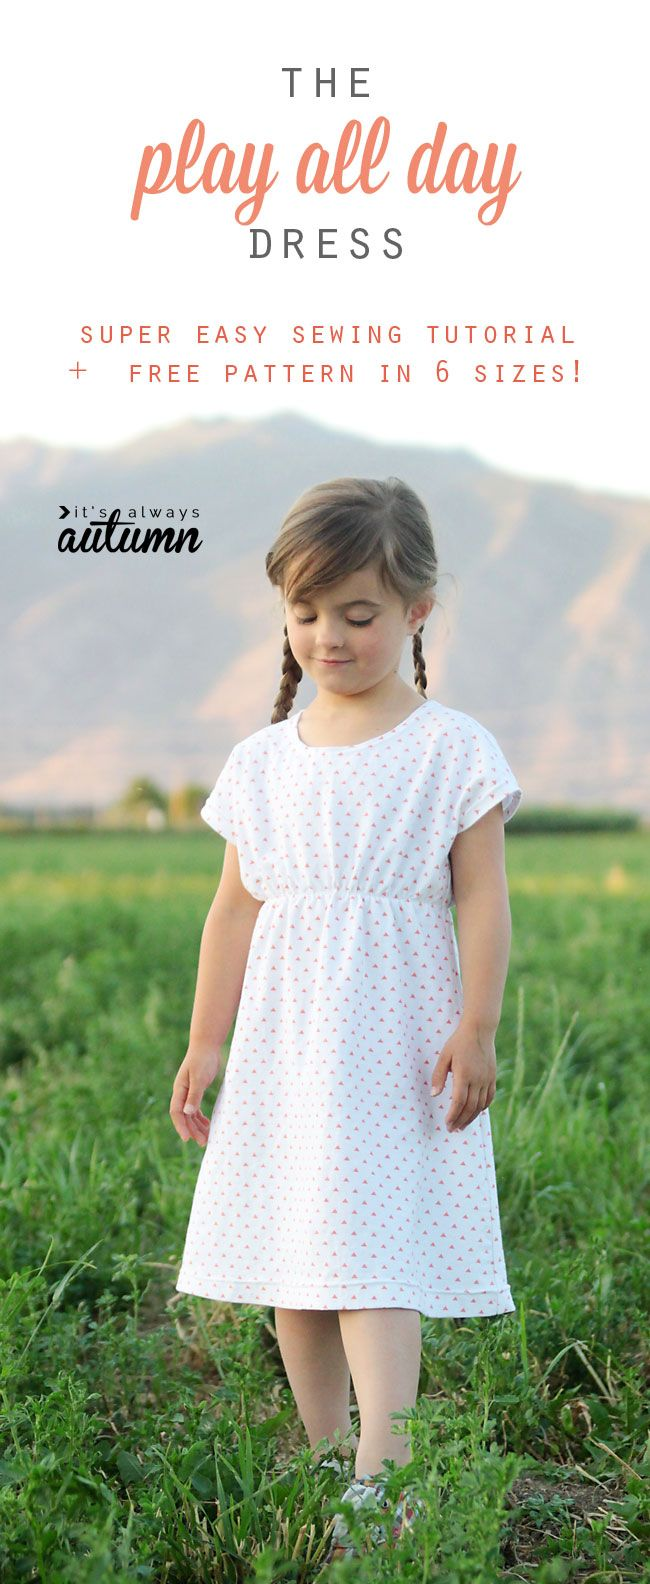 the play-all-day dress: free girls\' dress pattern in 6 sizes | Free ...